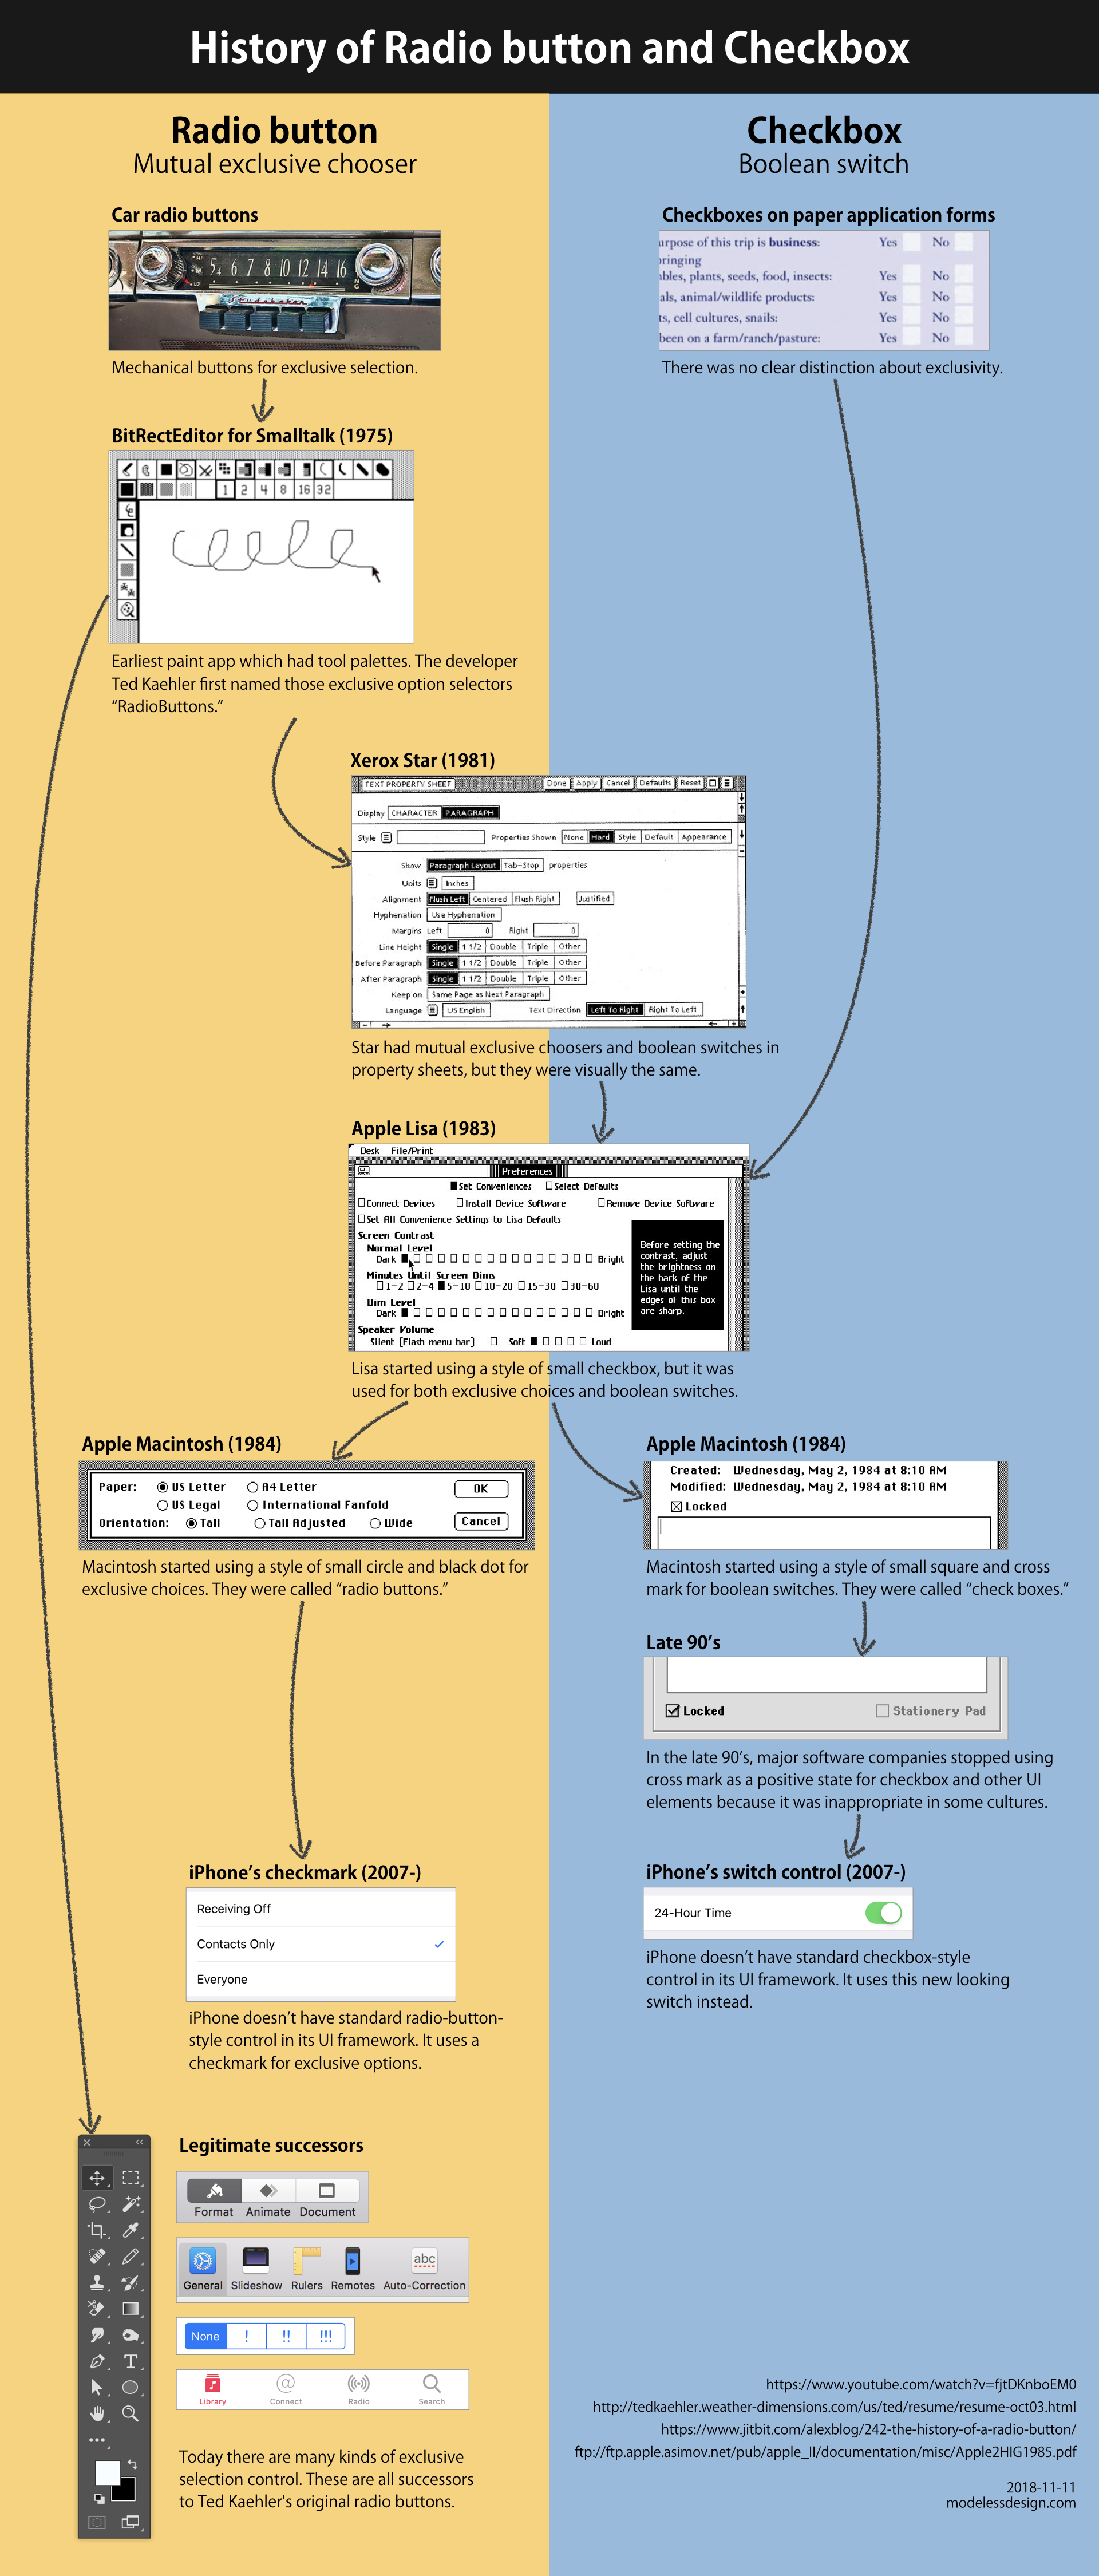 Illustration of a history of radio button and checkbox.